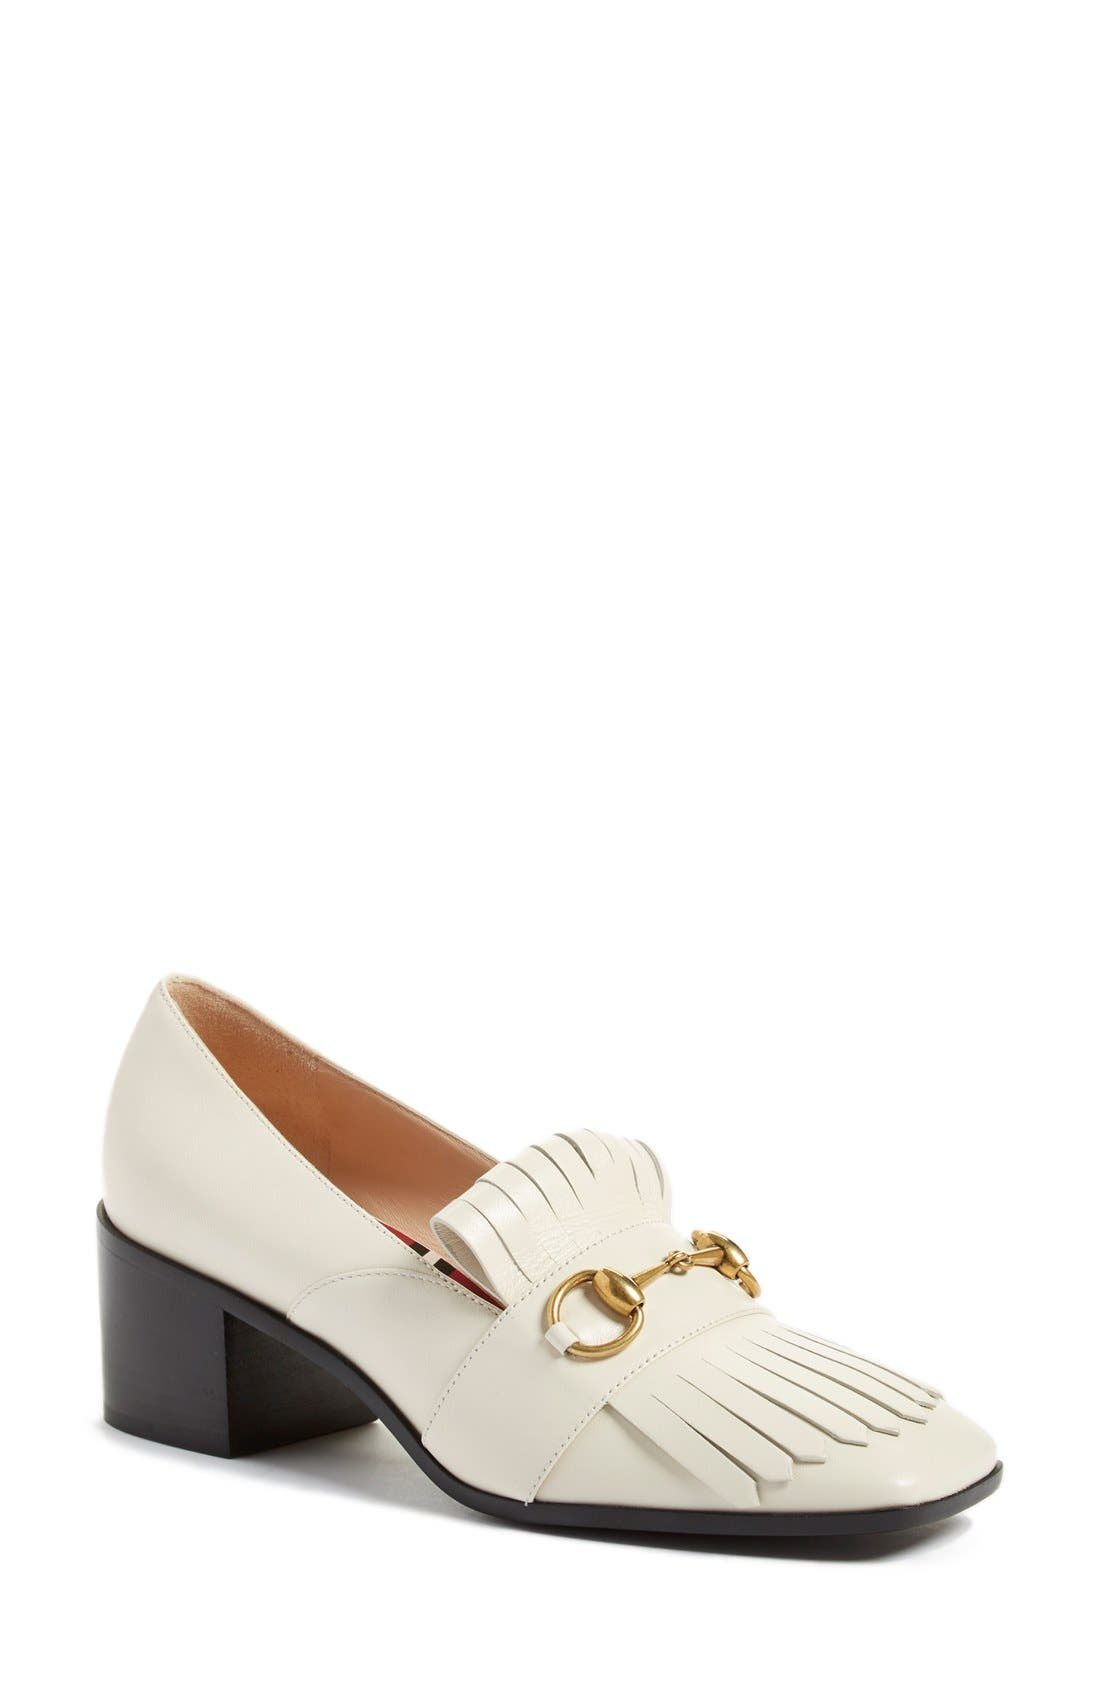 Gucci 'Polly' Block Heel Pump (Women)